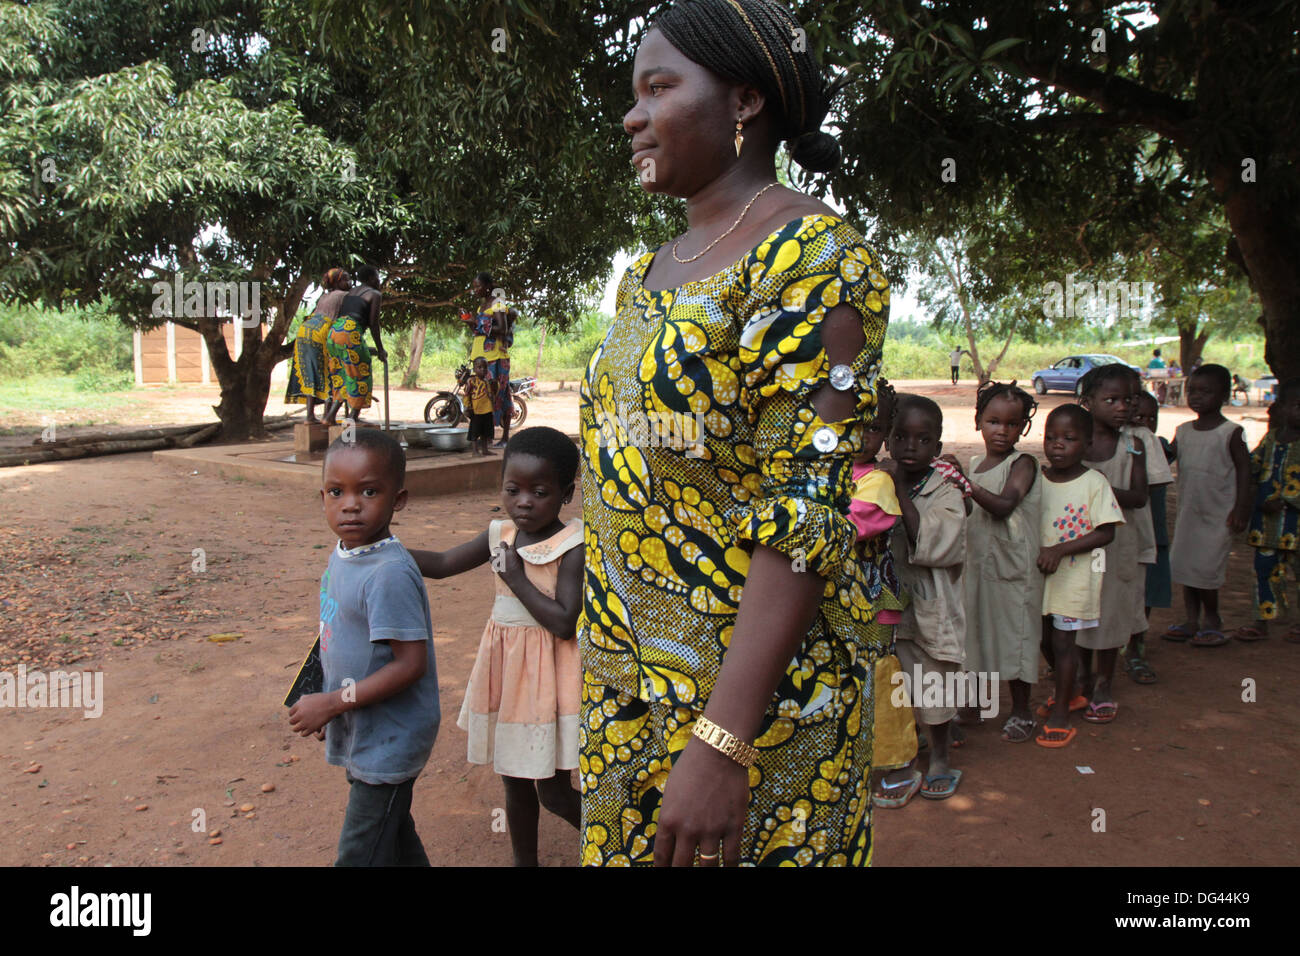 Teacher accompanying students to school, Hevie, Benin, West Africa, Africa - Stock Image